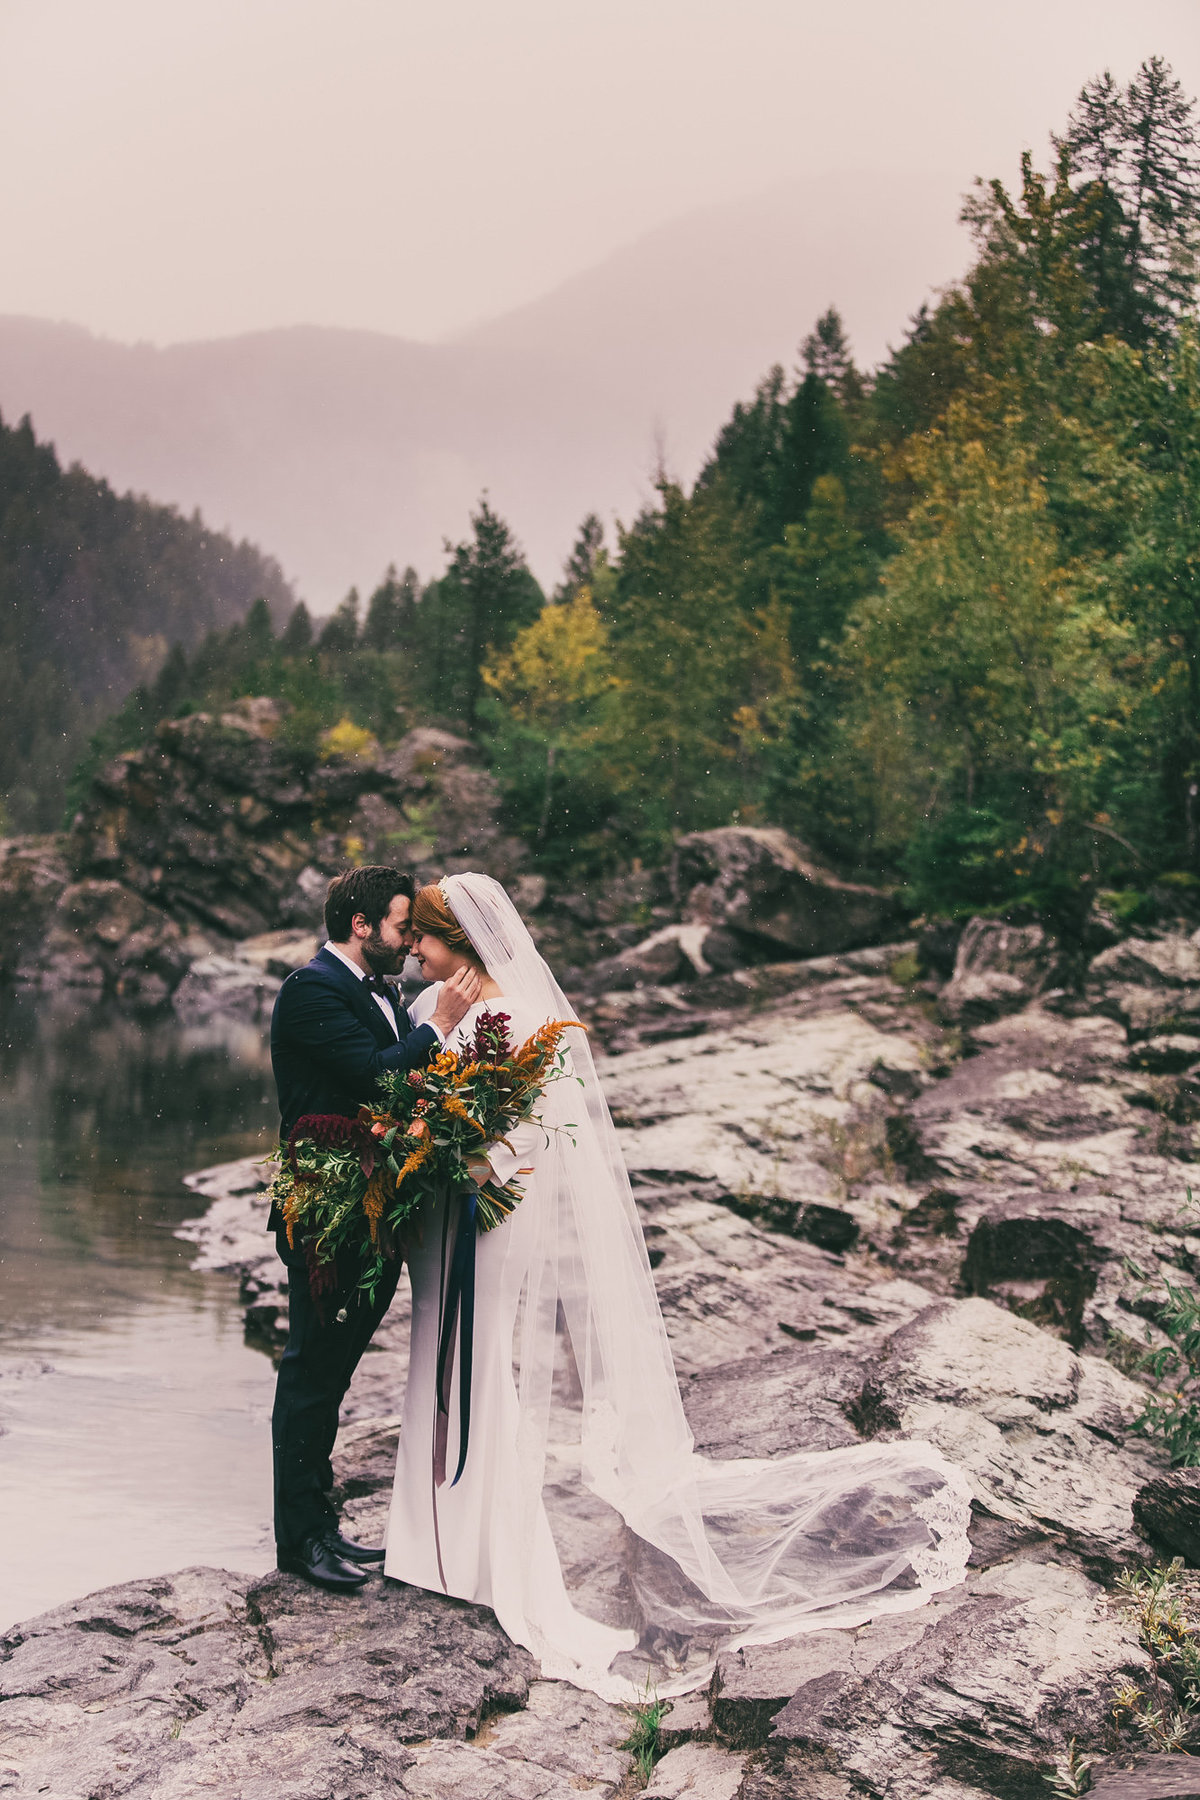 Jennifer_Mooney_Photography_Abbey_Stephen_Fall_Winter_Glacier_Park_Elopement-45